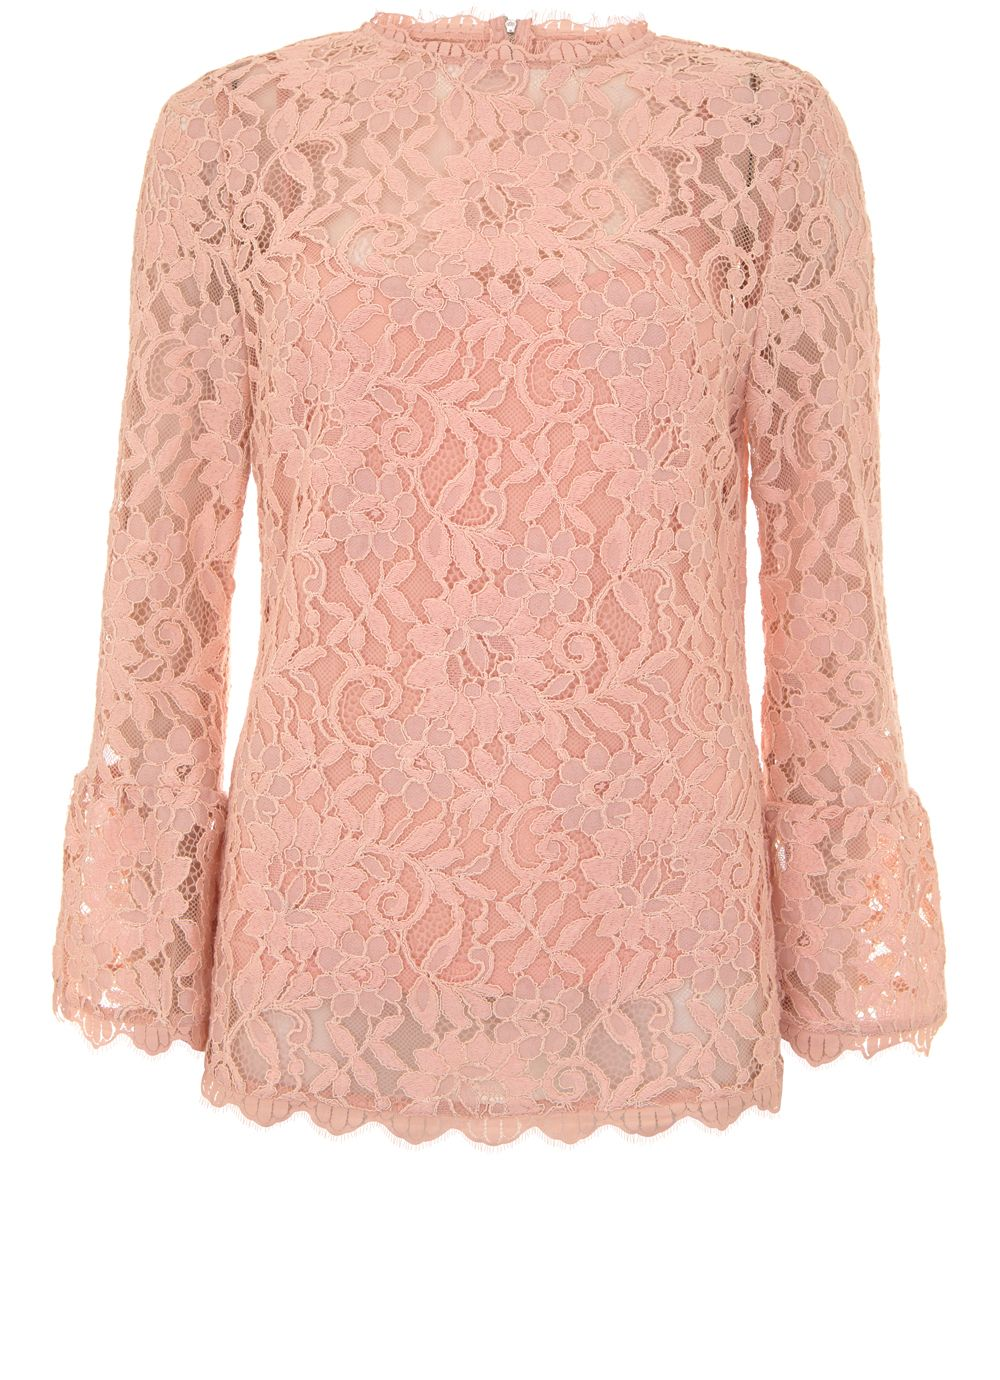 Mint Velvet Nude Lace Flared Cuff Top, Pastel Pink